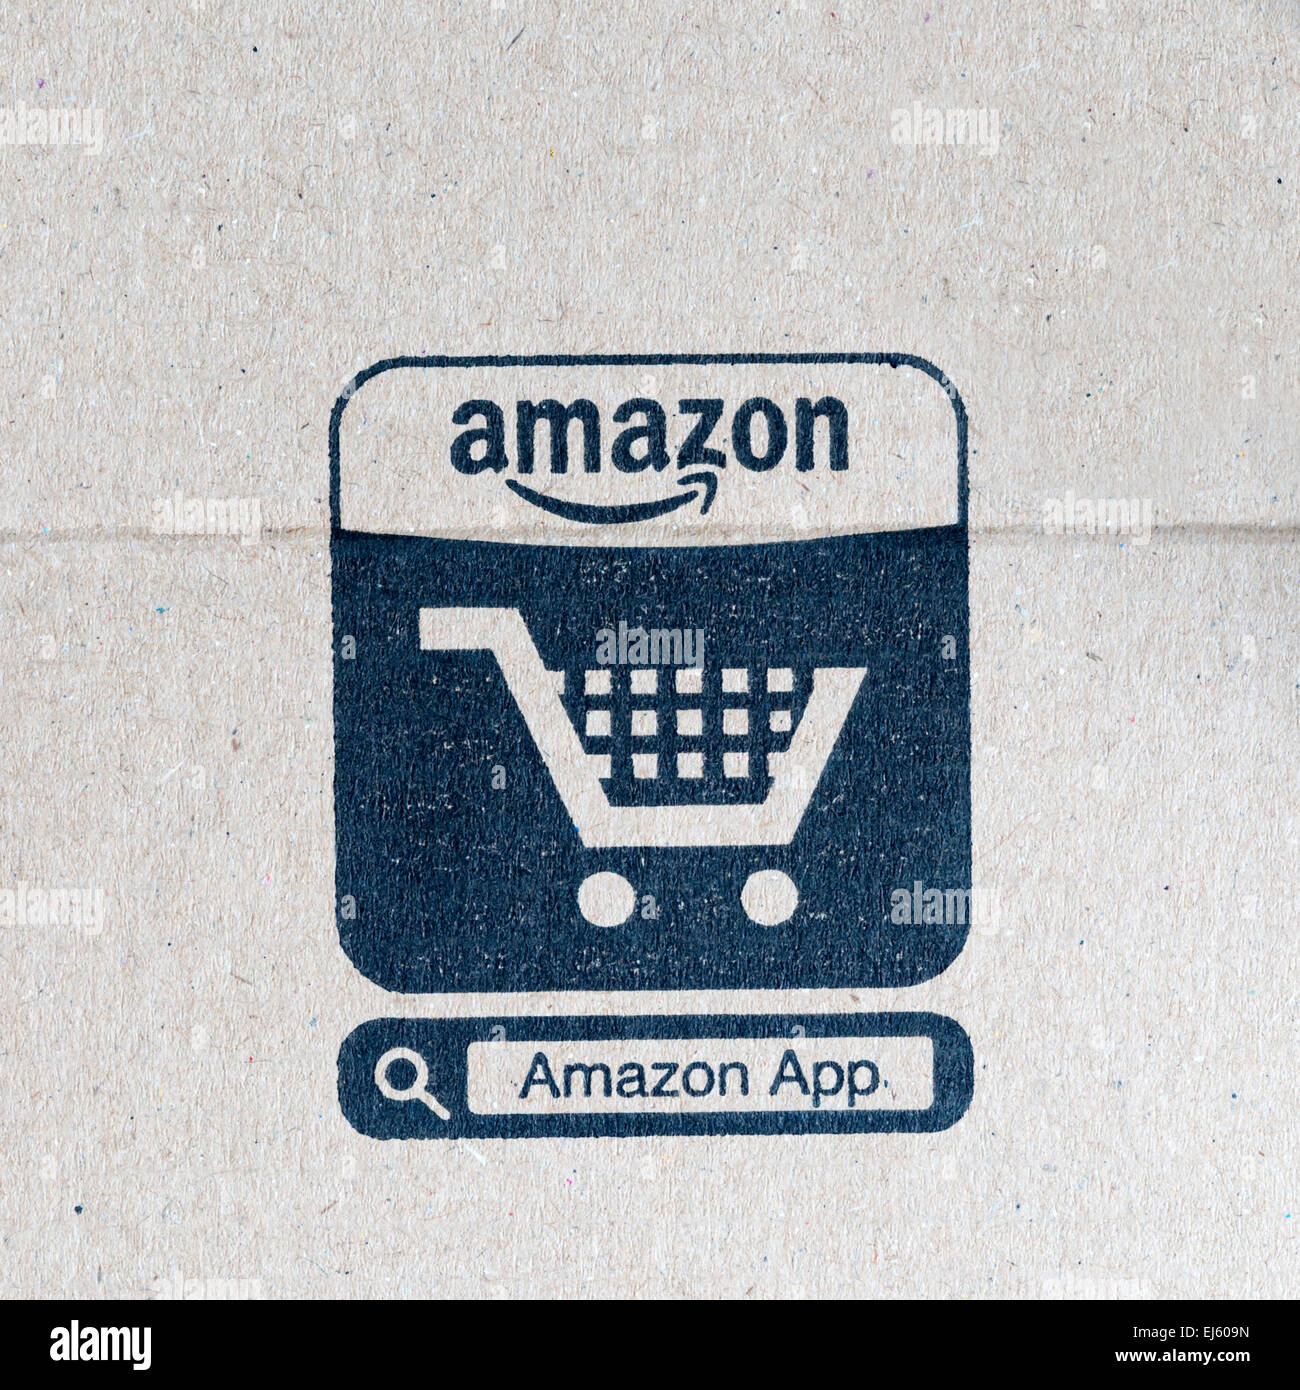 Symbol For Amazon App On Cardboard Packaging The App Allows Online